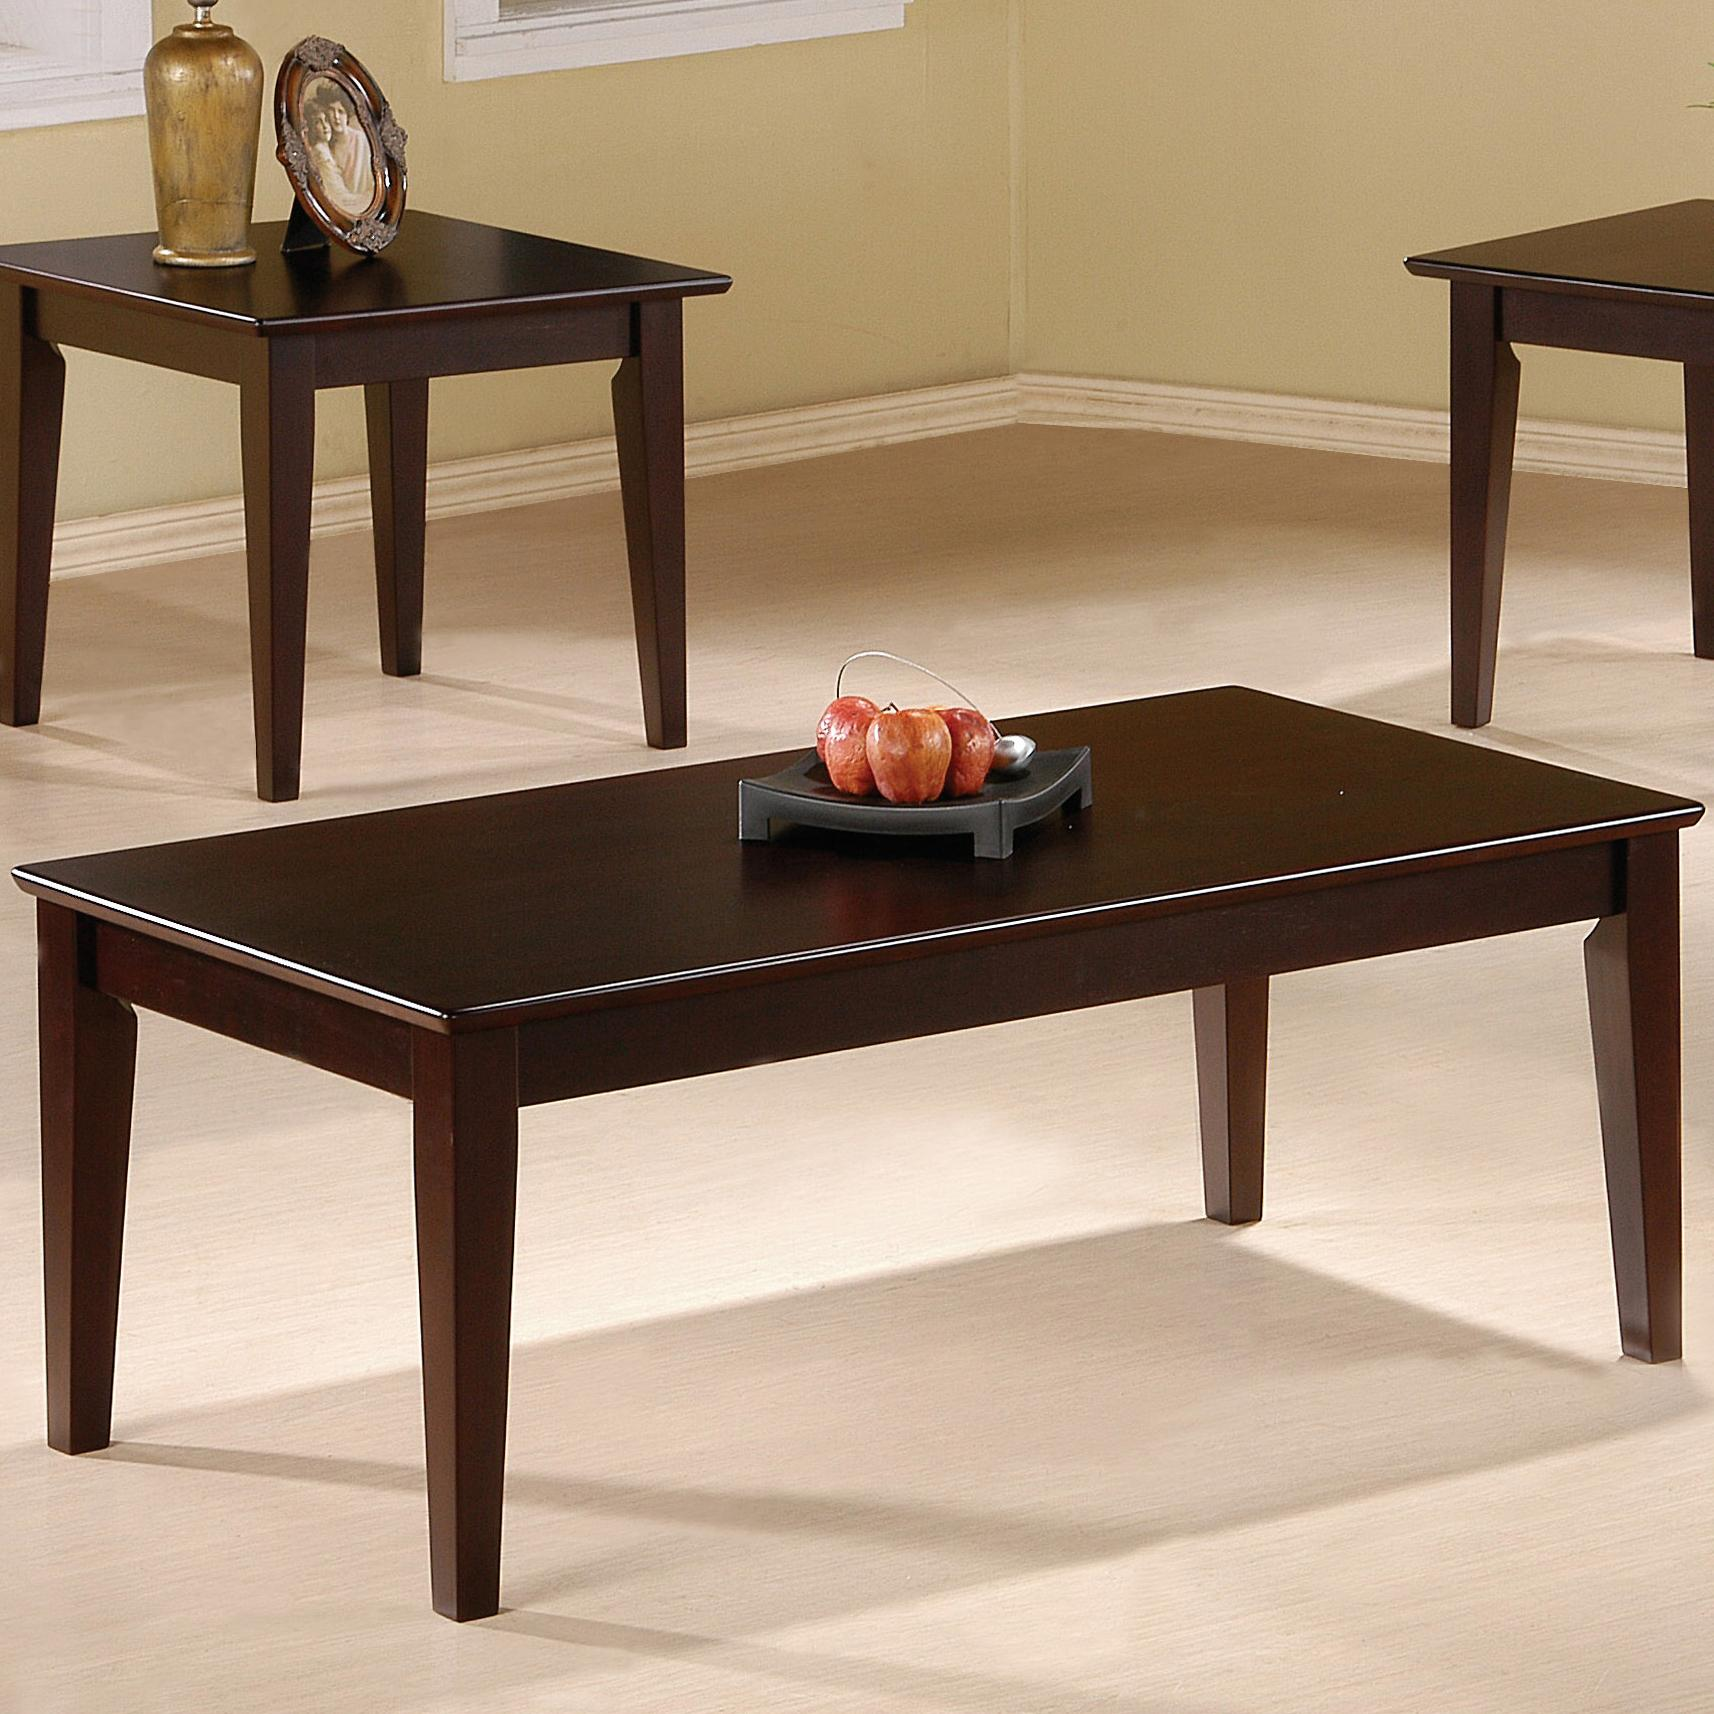 3 piece living room table sets 100 end tables on sale for 3 piece living room sets for sale